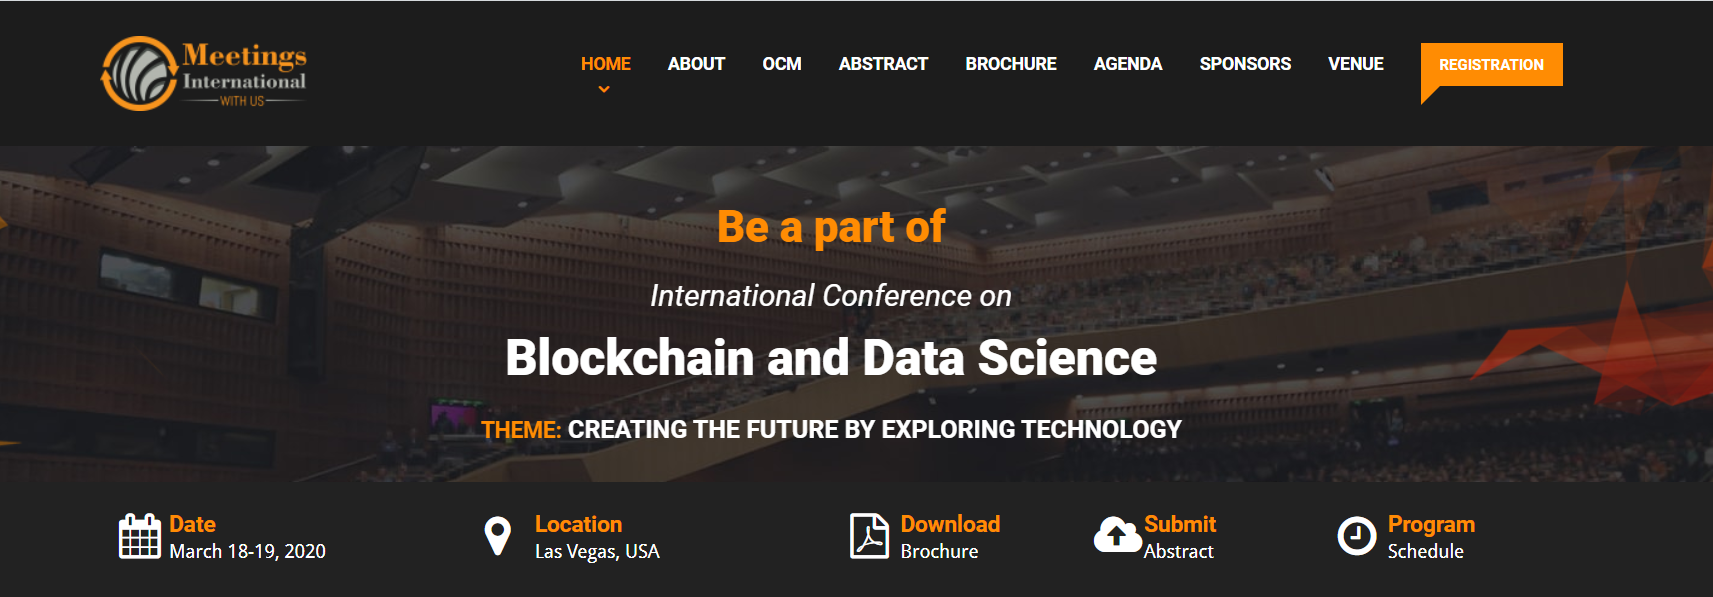 International Conference on Blockchain and Data Science